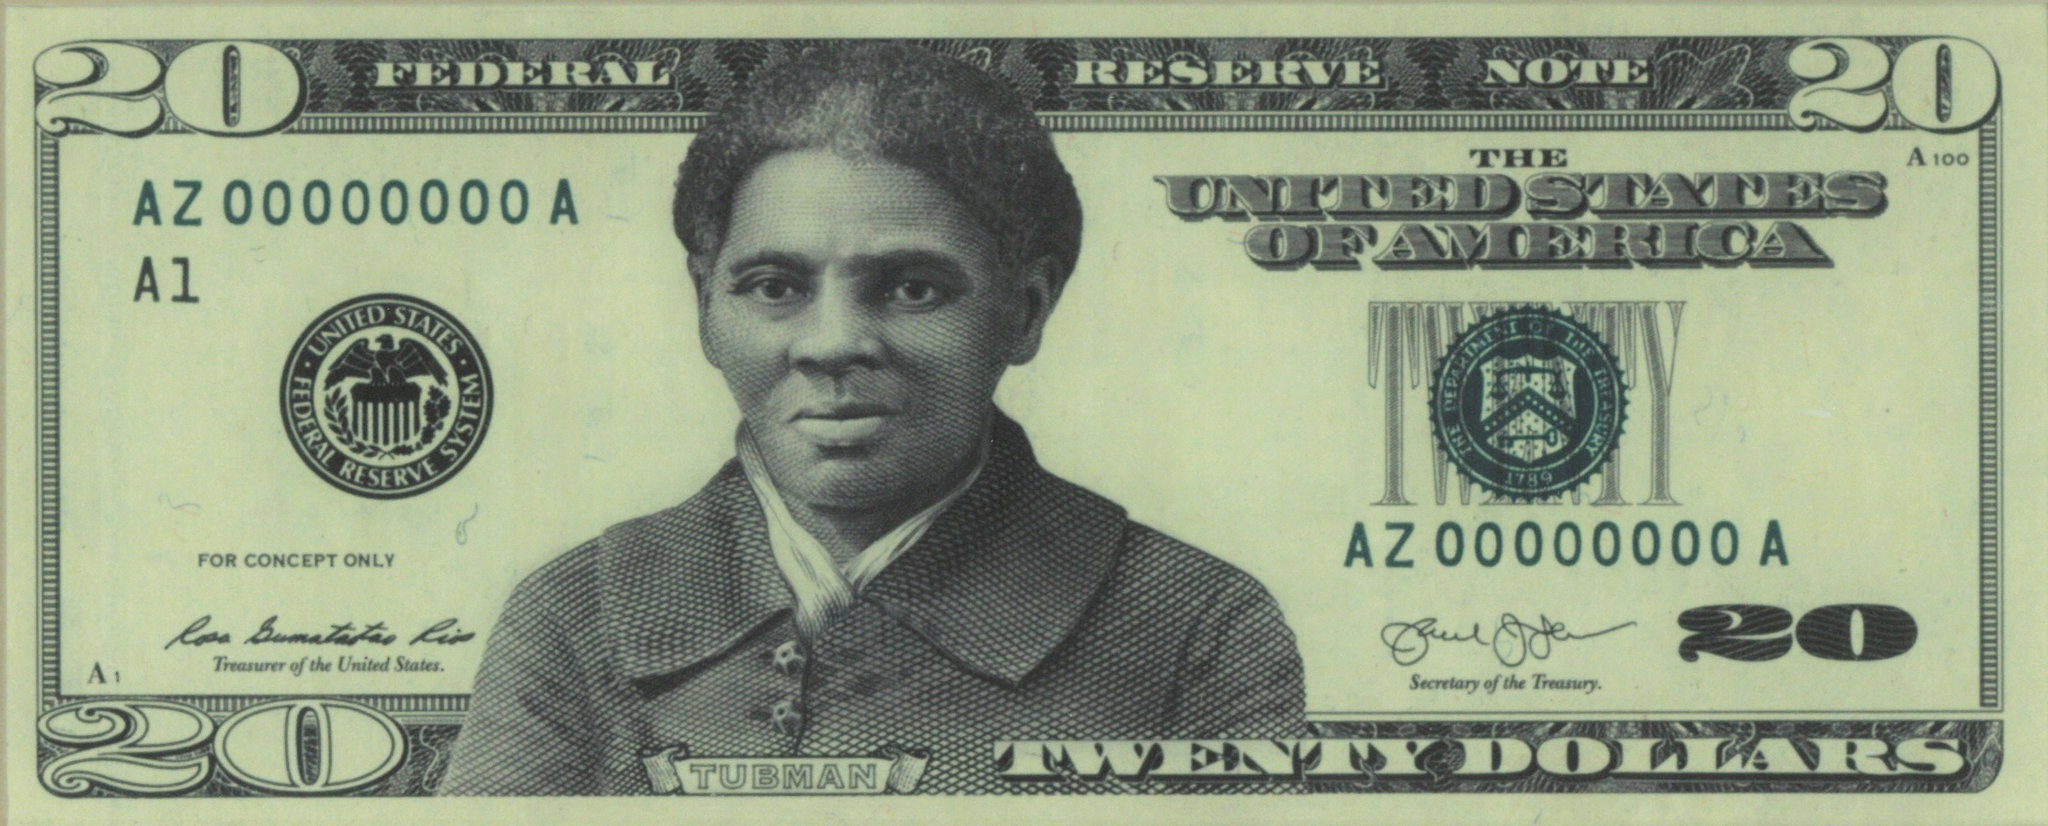 A concept for how the Harriet Tubman $20 bill would have looked, as reported and reproduced in the New York Times.